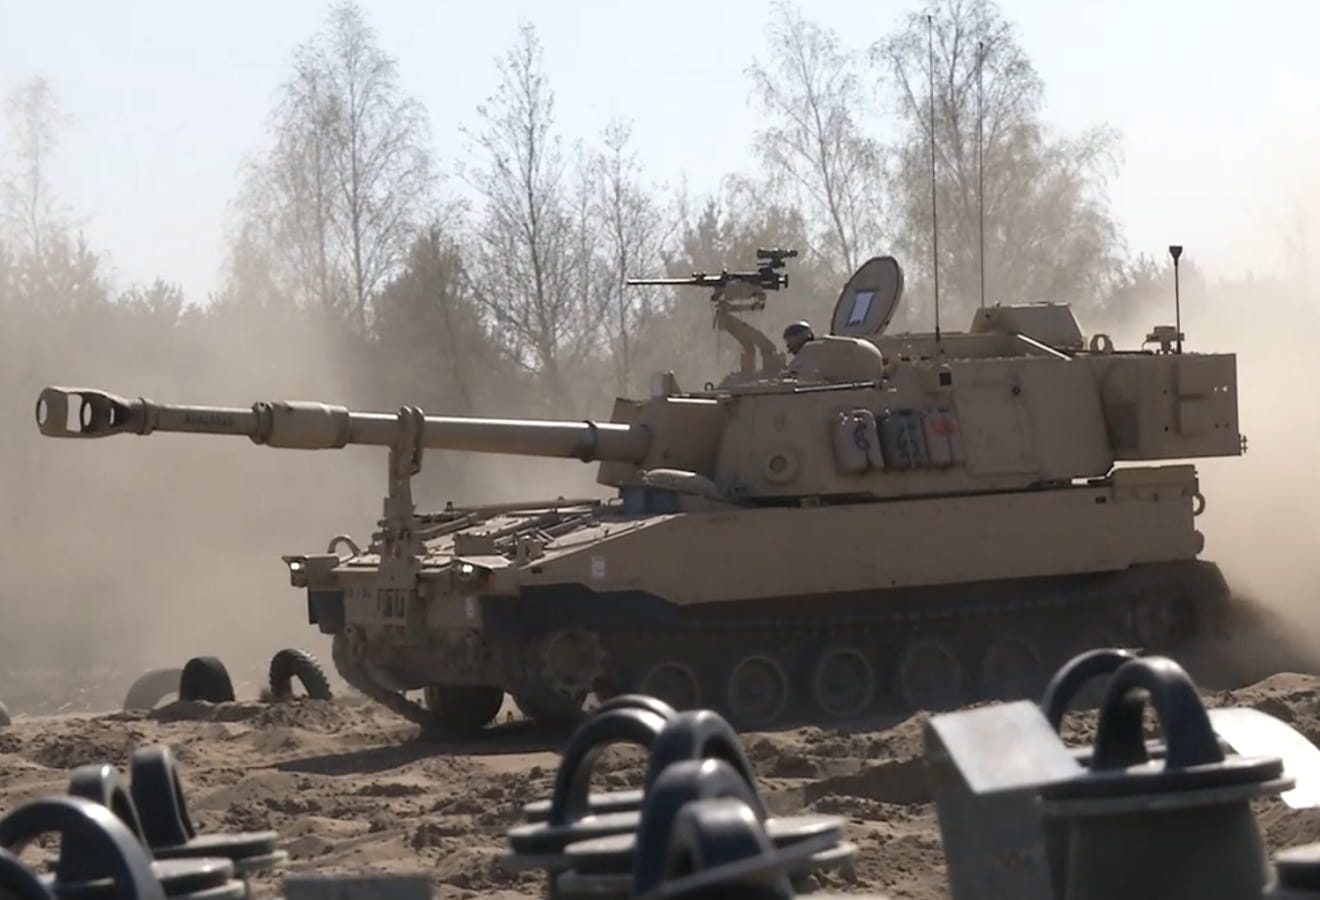 U.S. Field artillery back to learning manual methods after Russian intervention in Ukraine